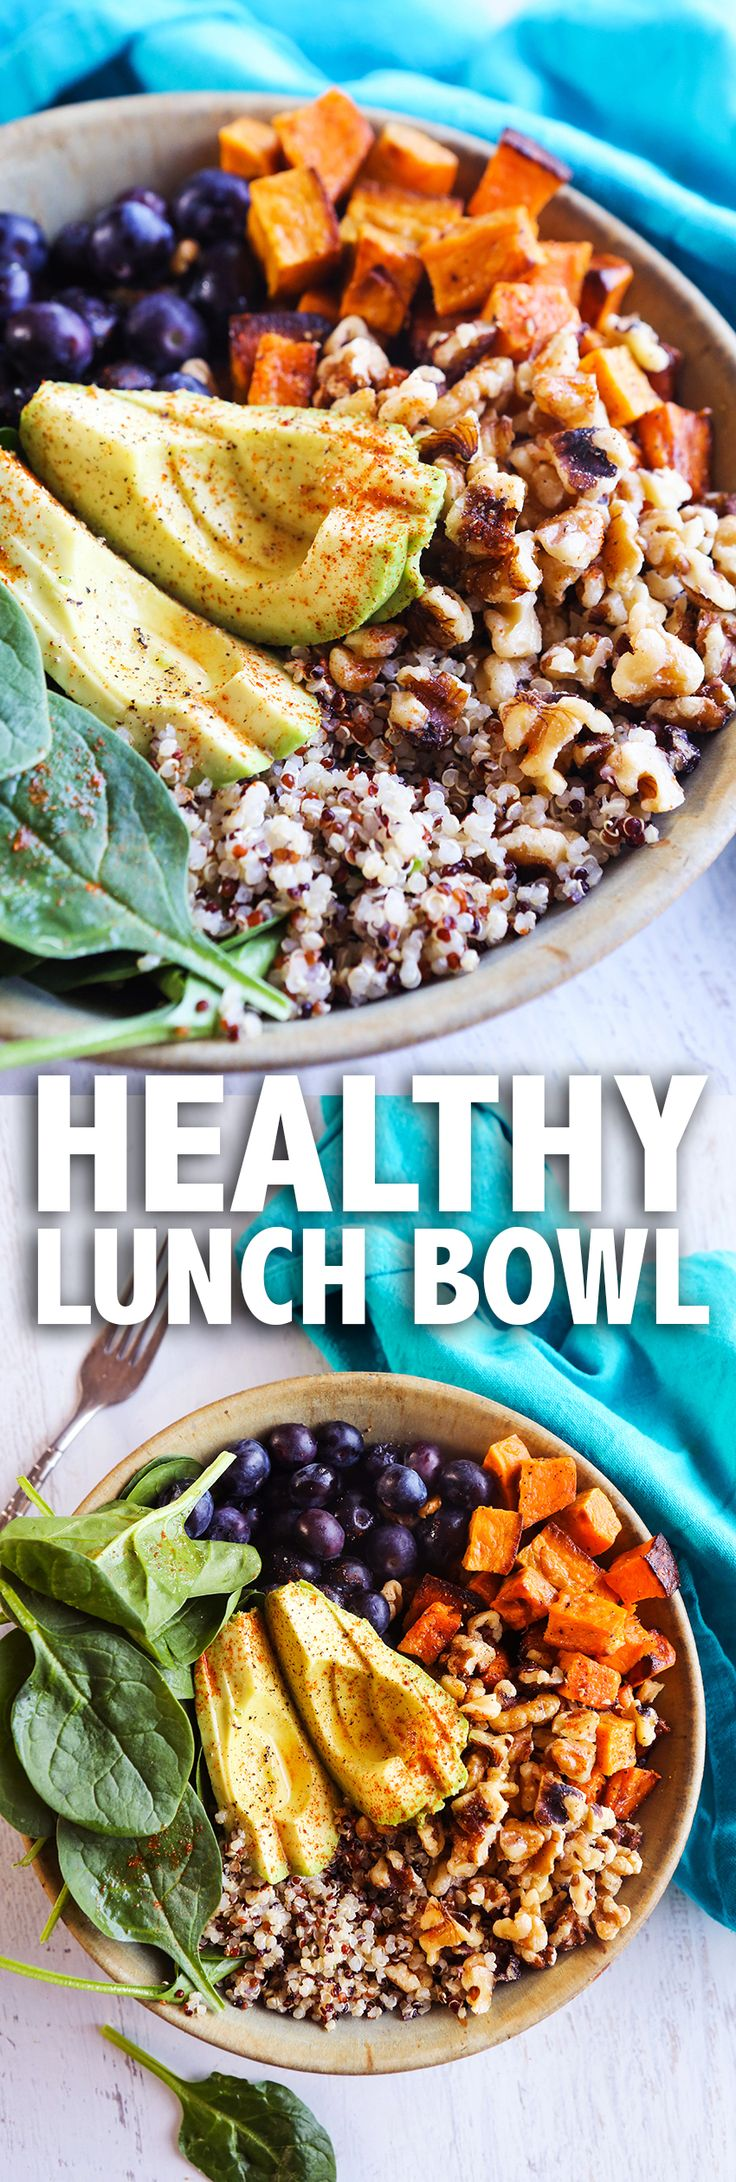 Healthy Lunch Bowl | This lunch bowl is so delicious and PACKED with healthy goodness!